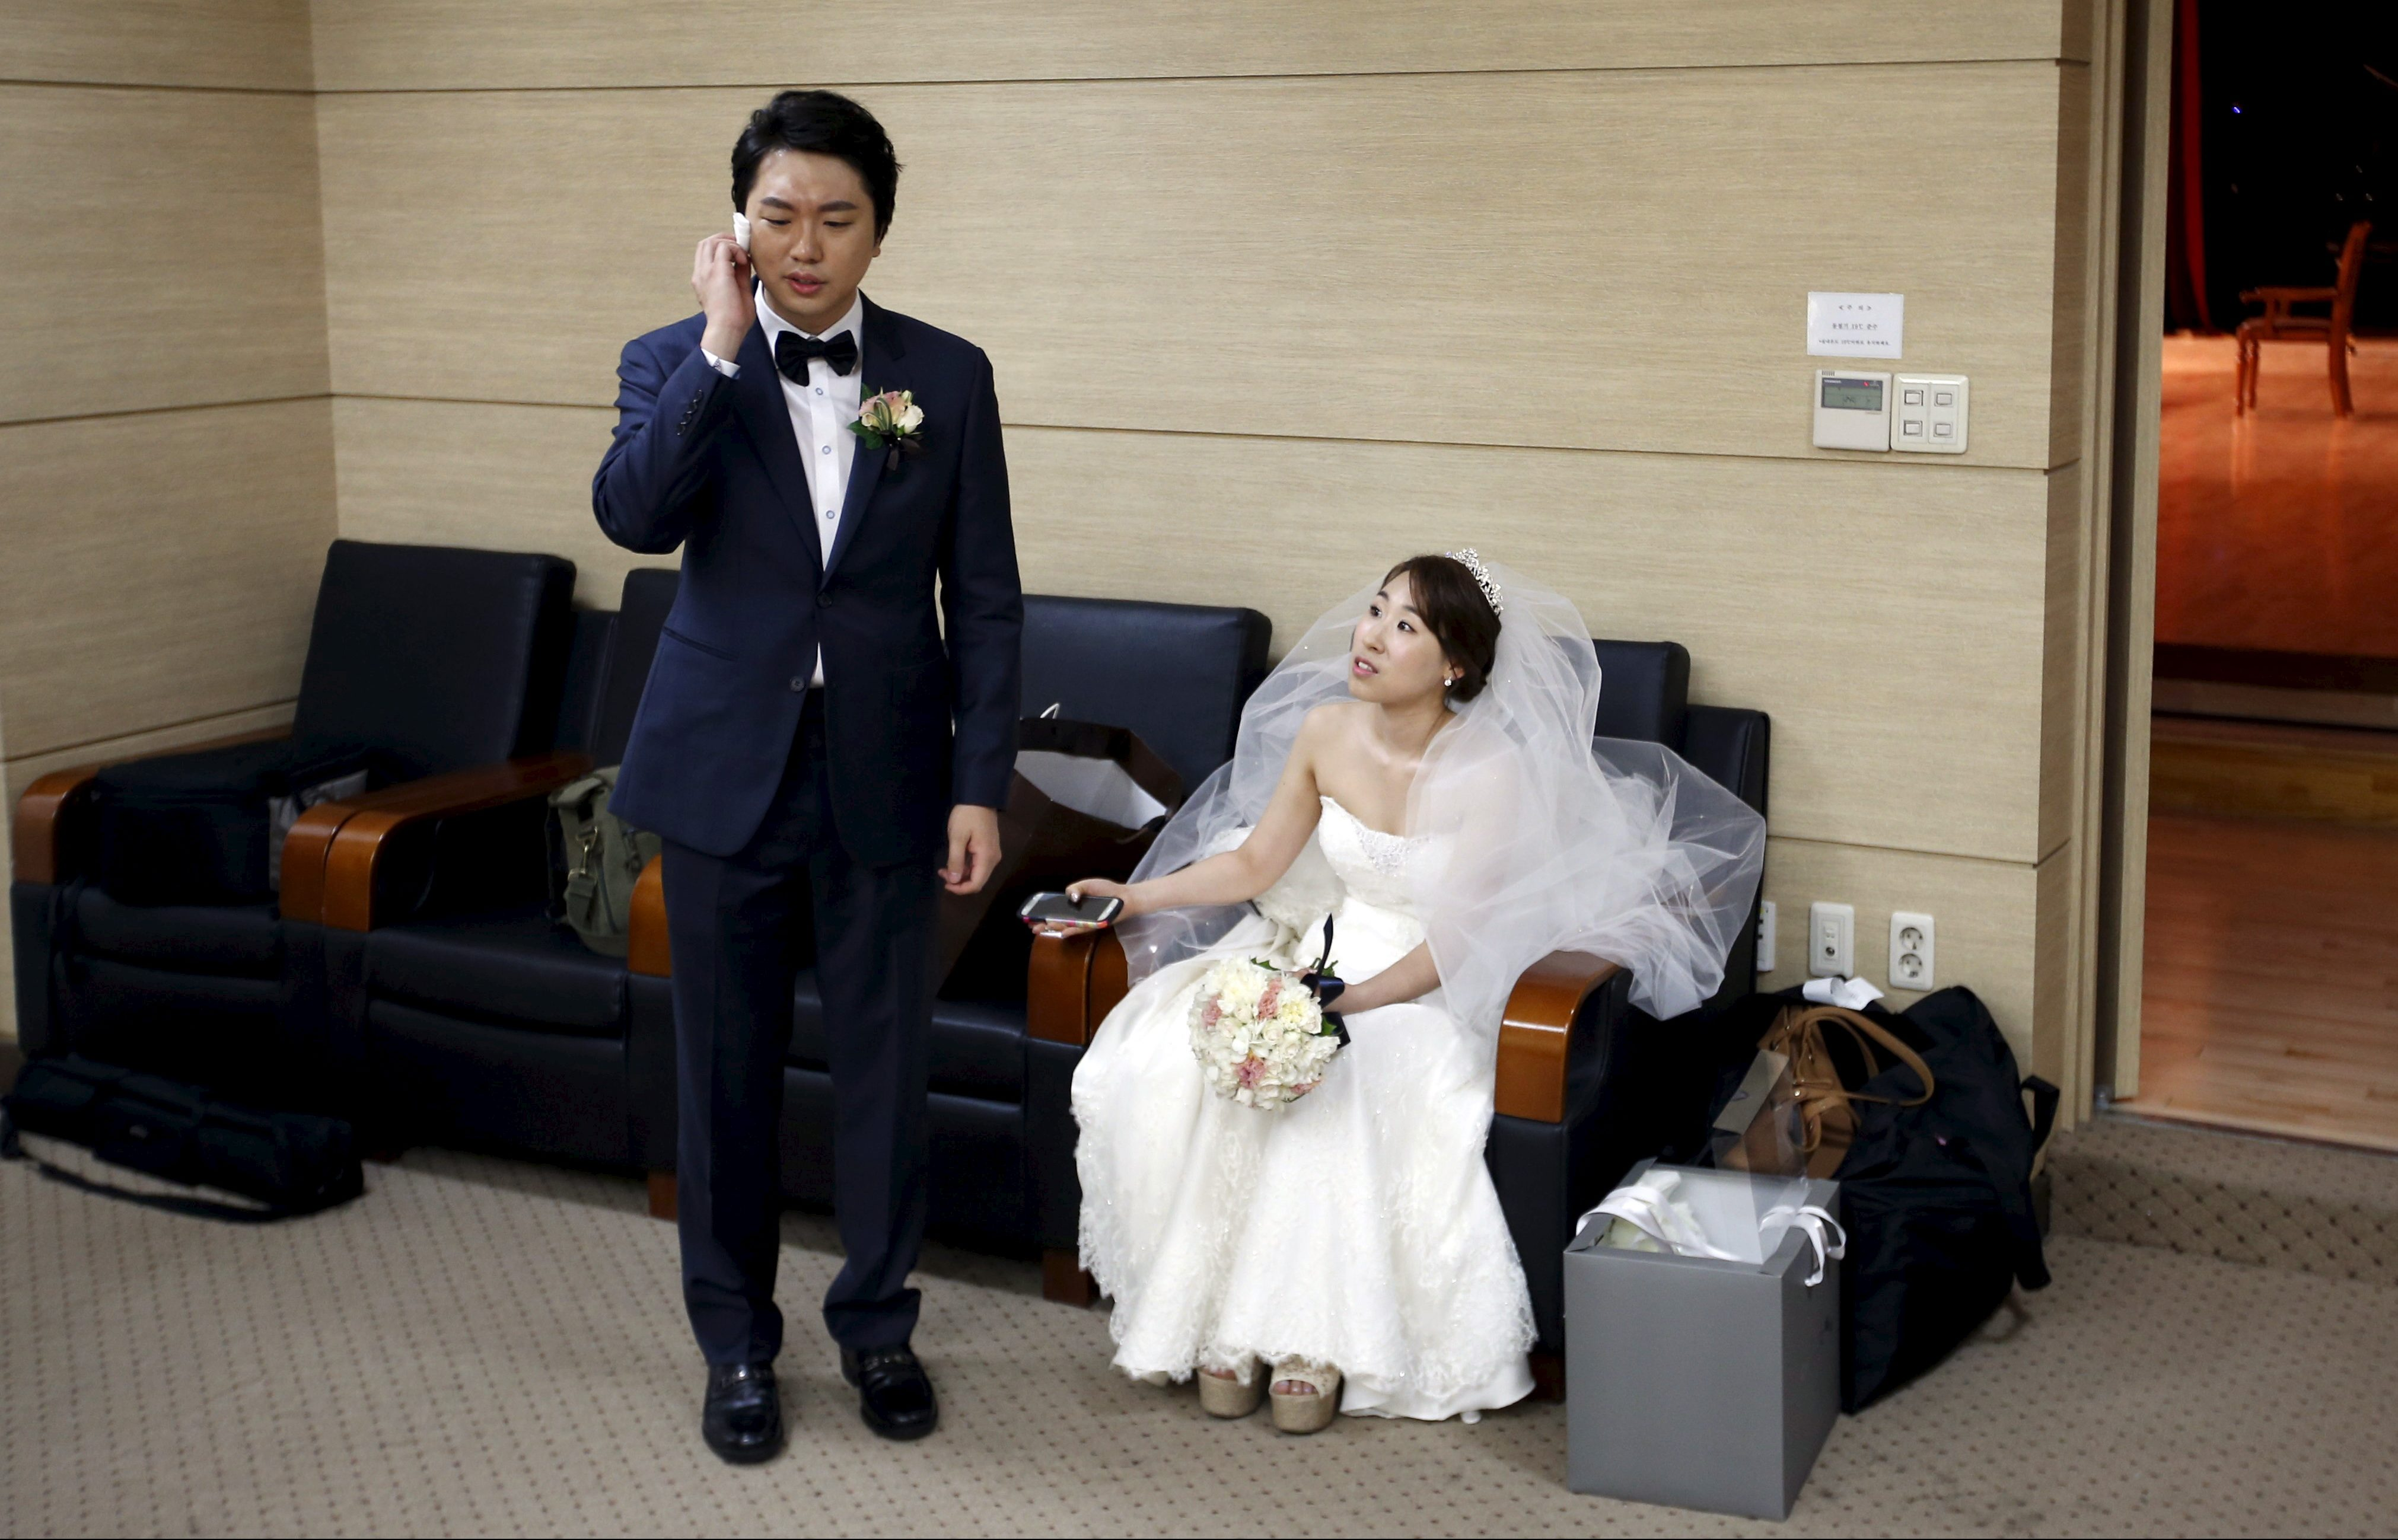 Bridal couple gets ready for their wedding ceremony at a budget wedding hall at the National Library of Korea in Seoul, South Korea